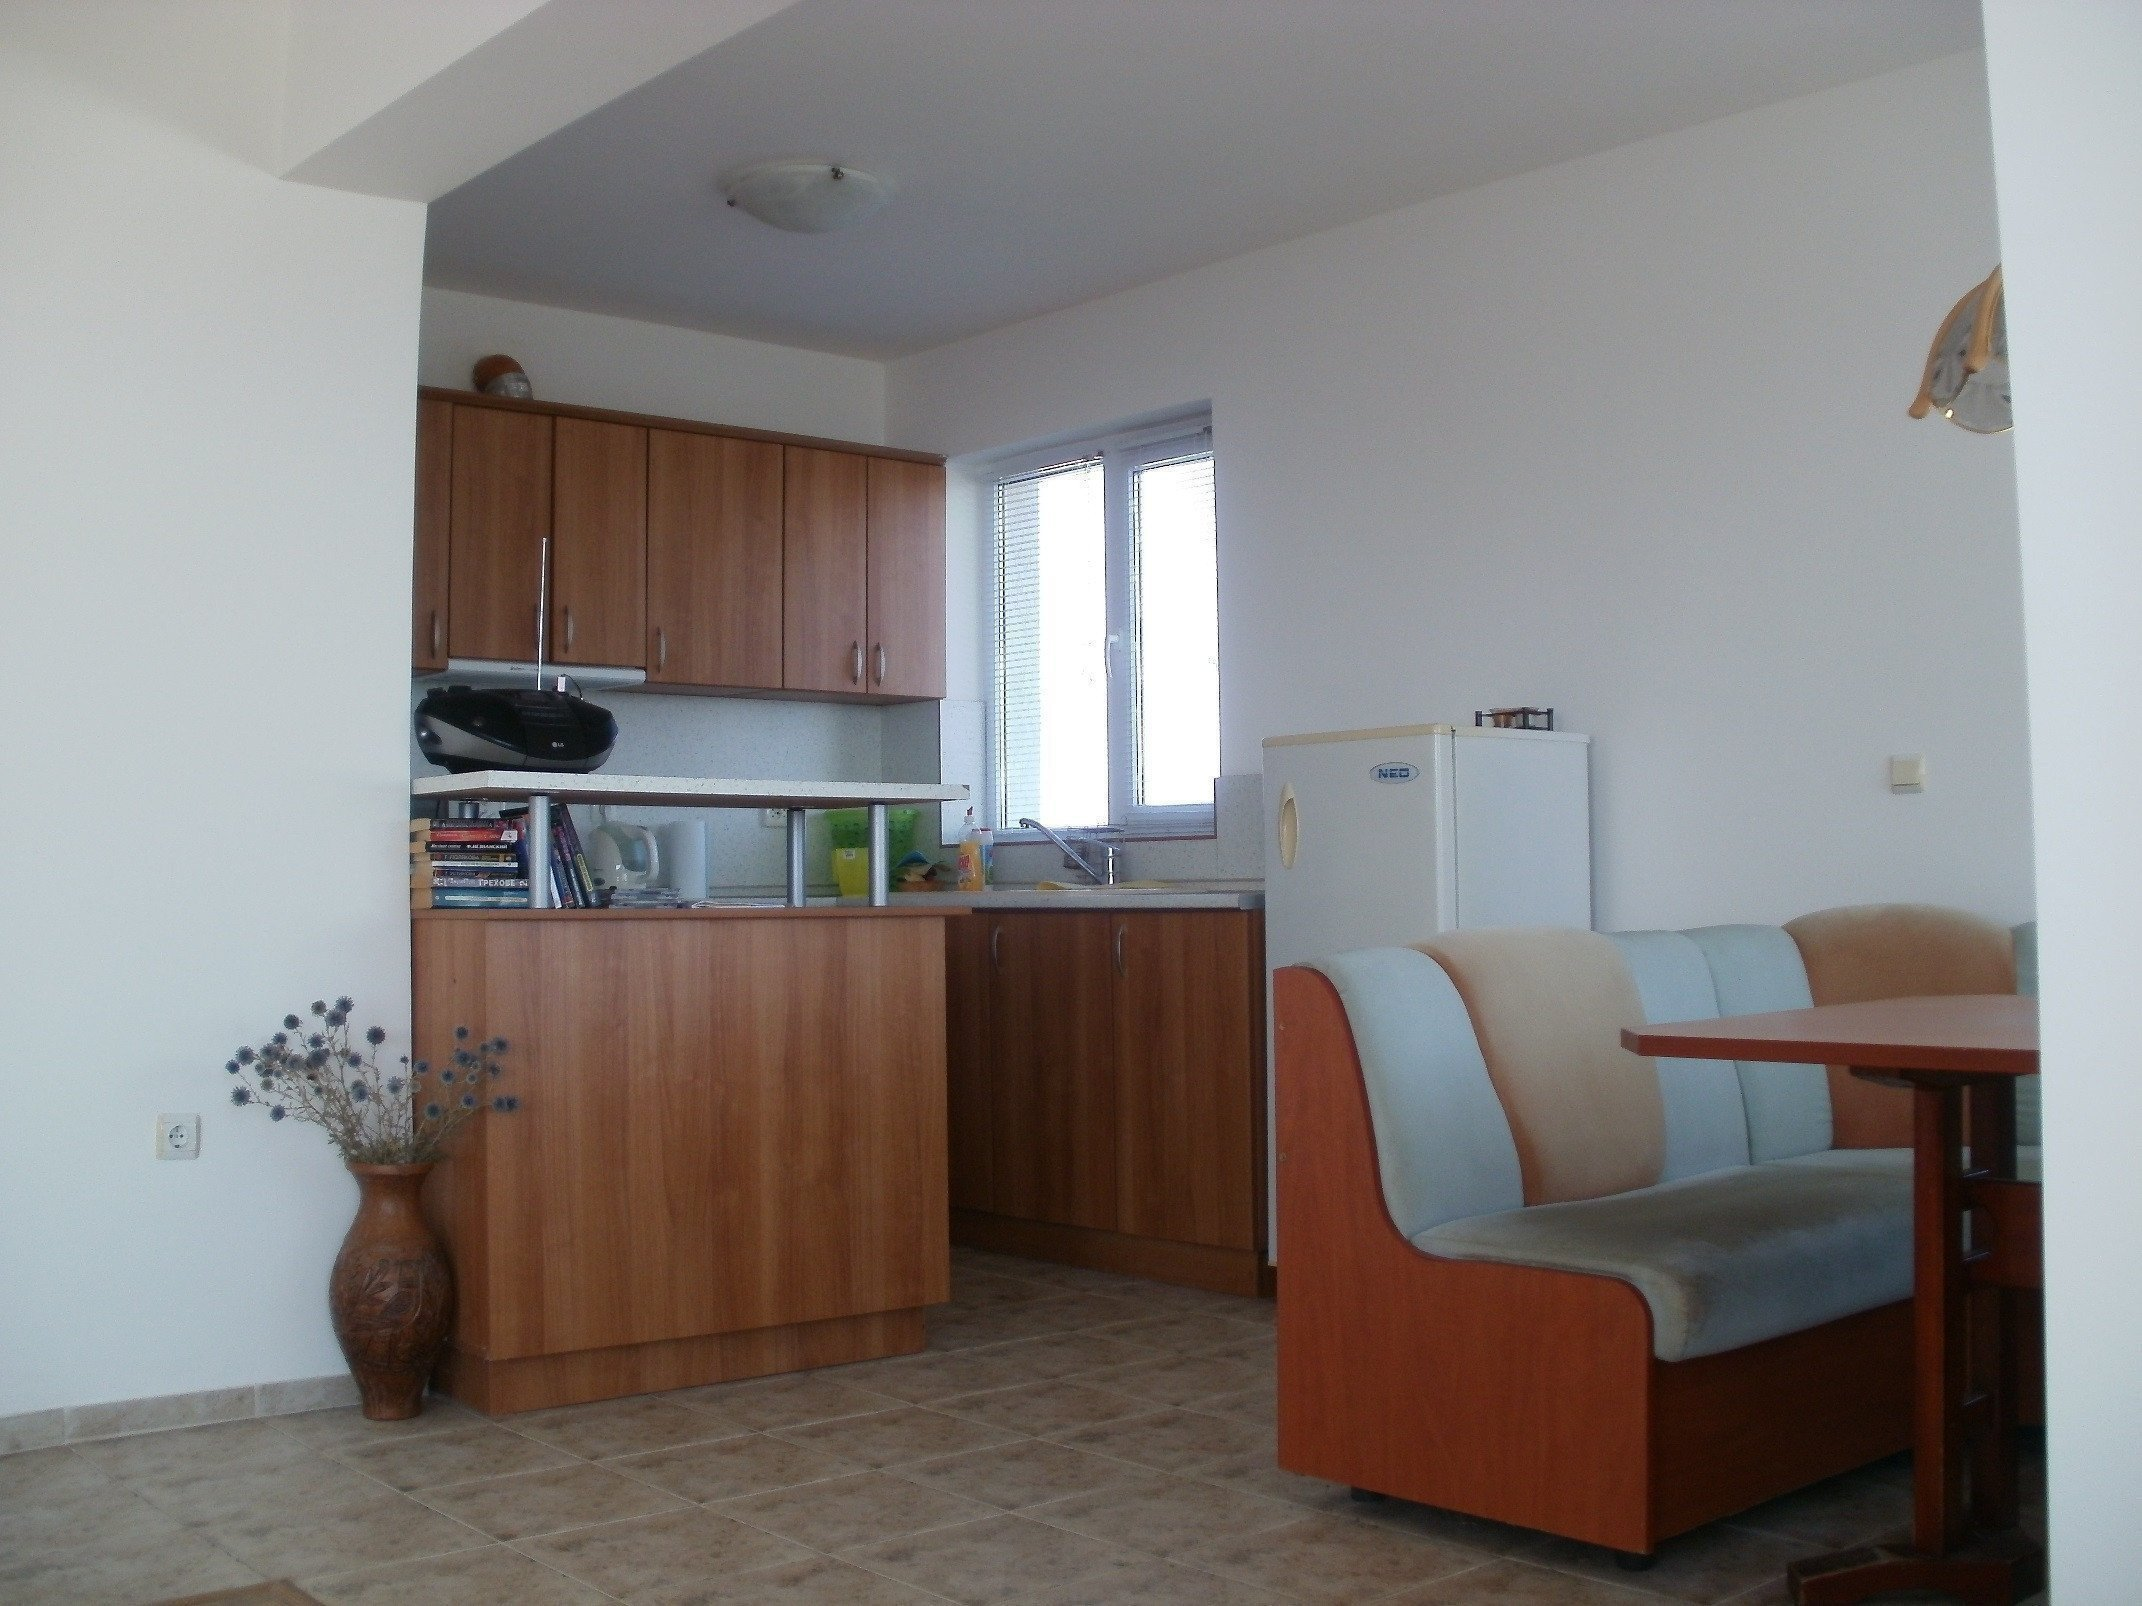 Sale property abroad Vila in the village of Topola, Bulgaria